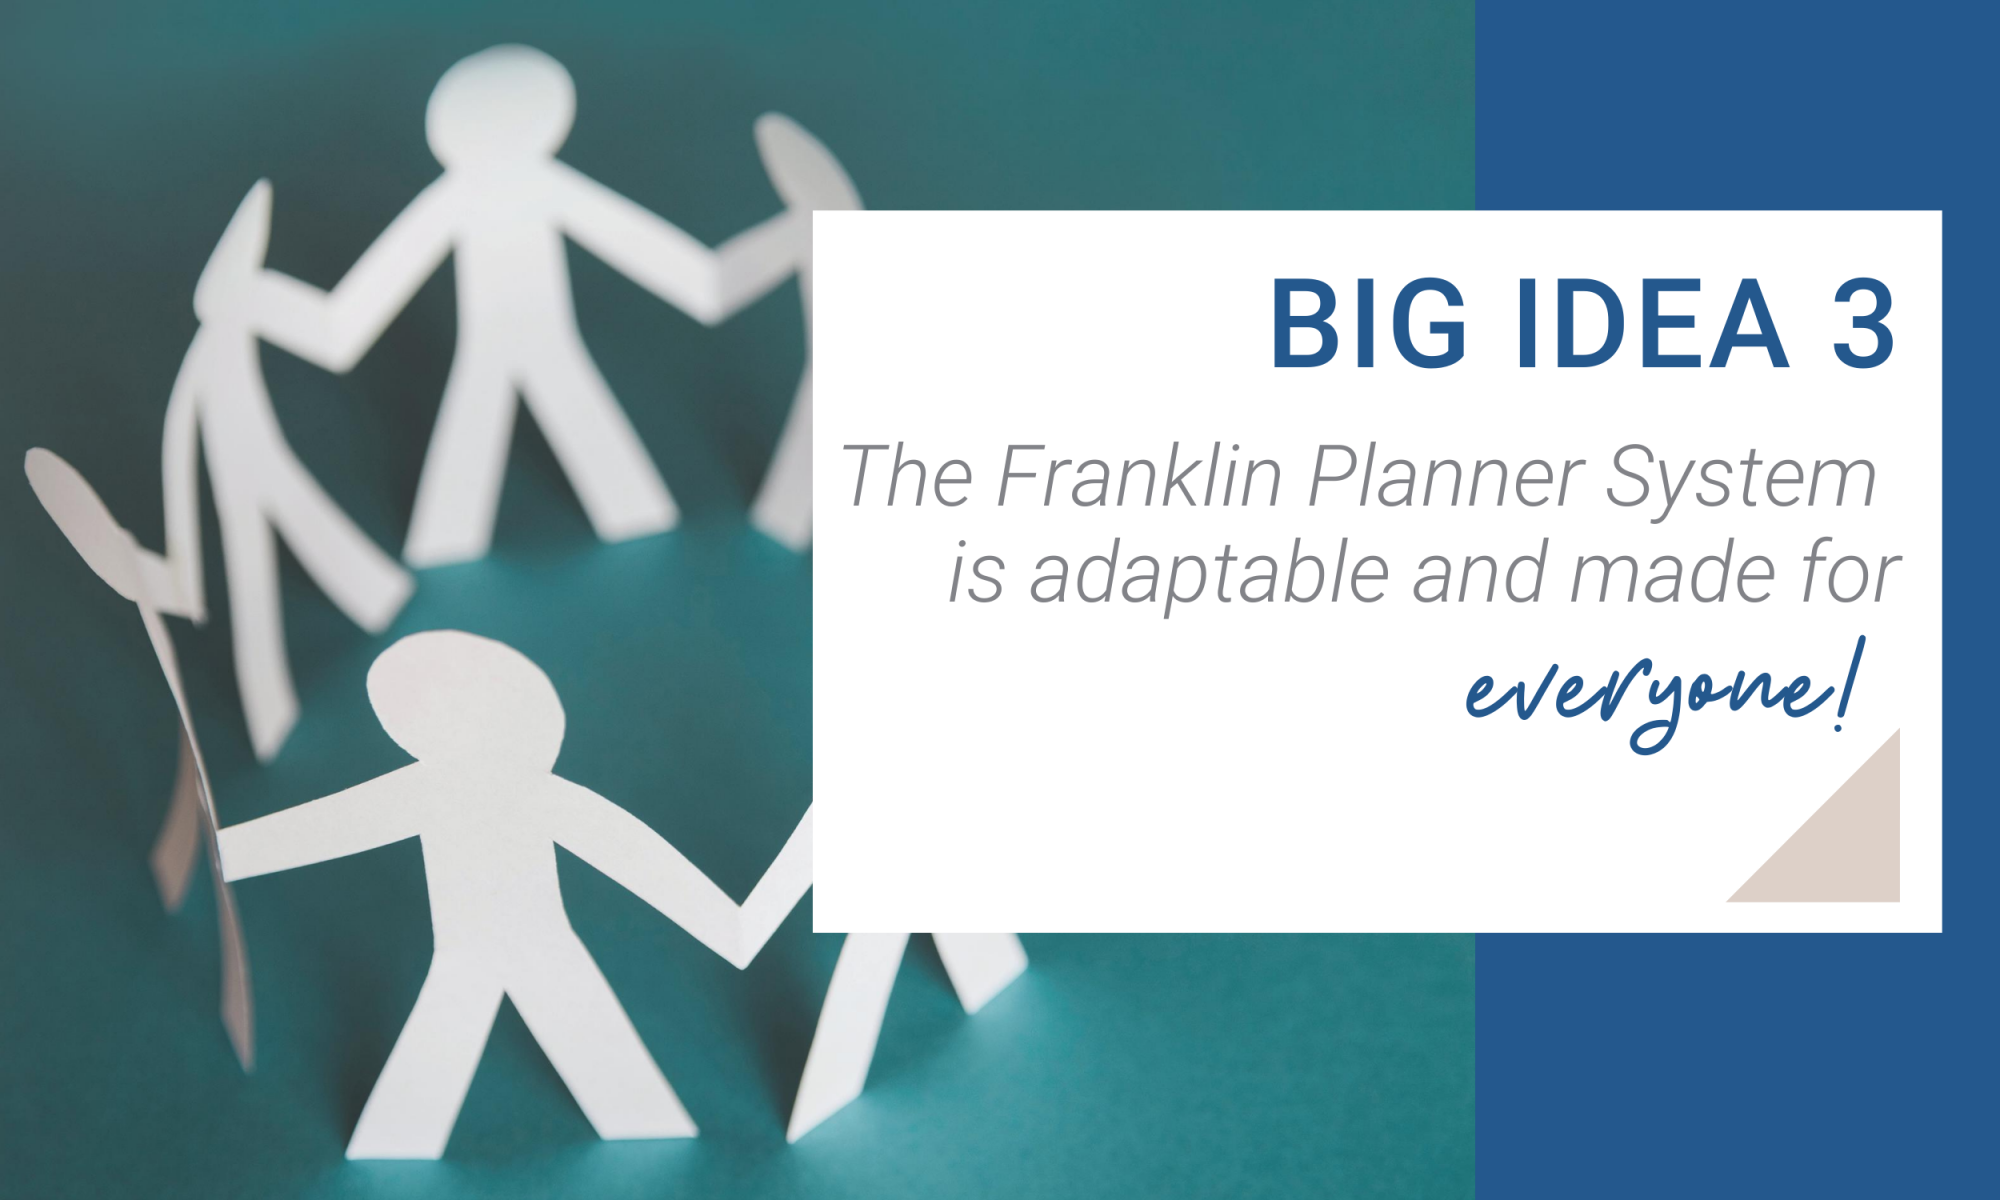 Big Idea 3. The Franklin Planner System is adaptable and made for everyone